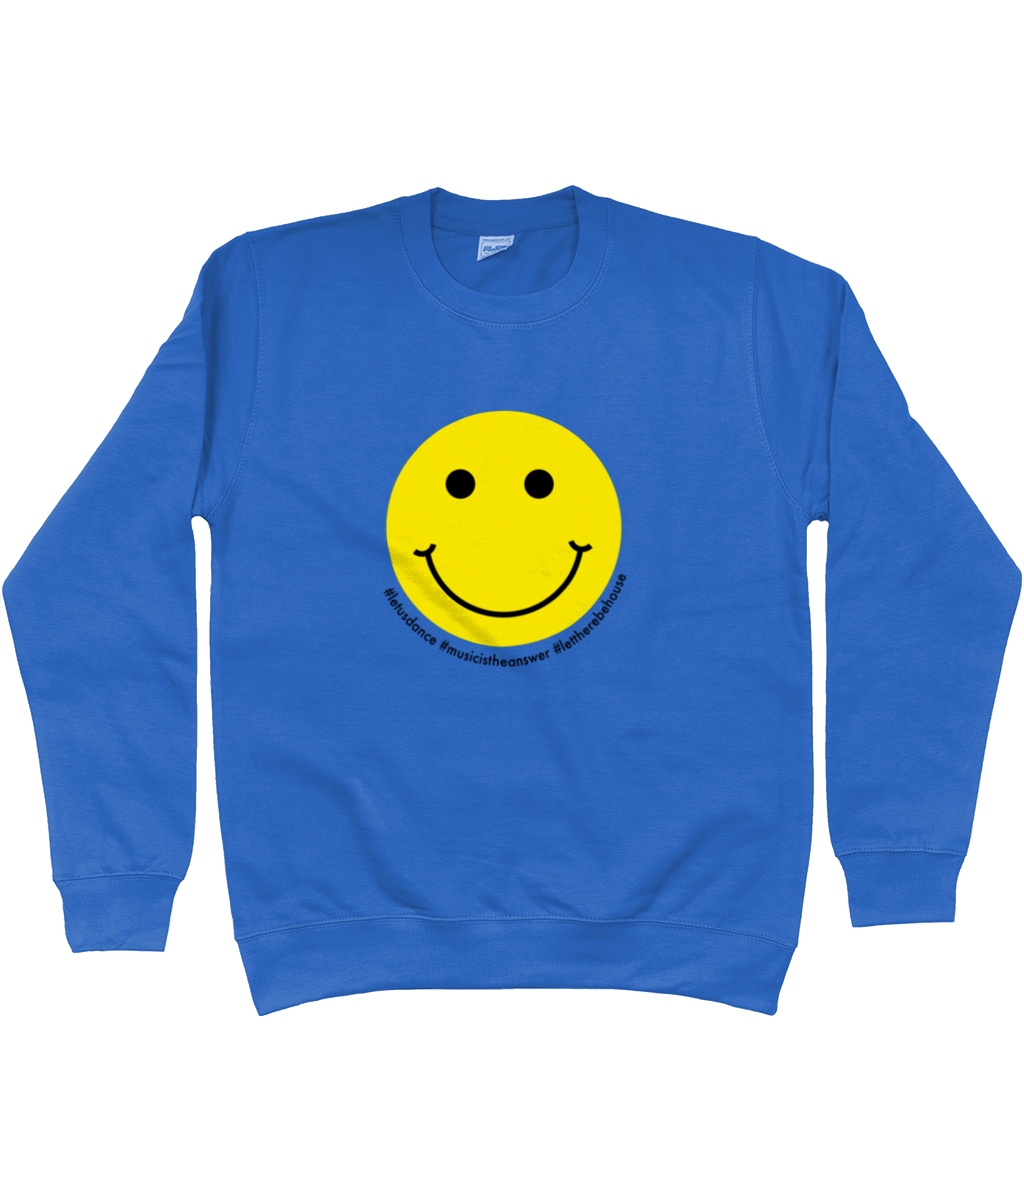 Sweatshirt Smiley Yellow & Black